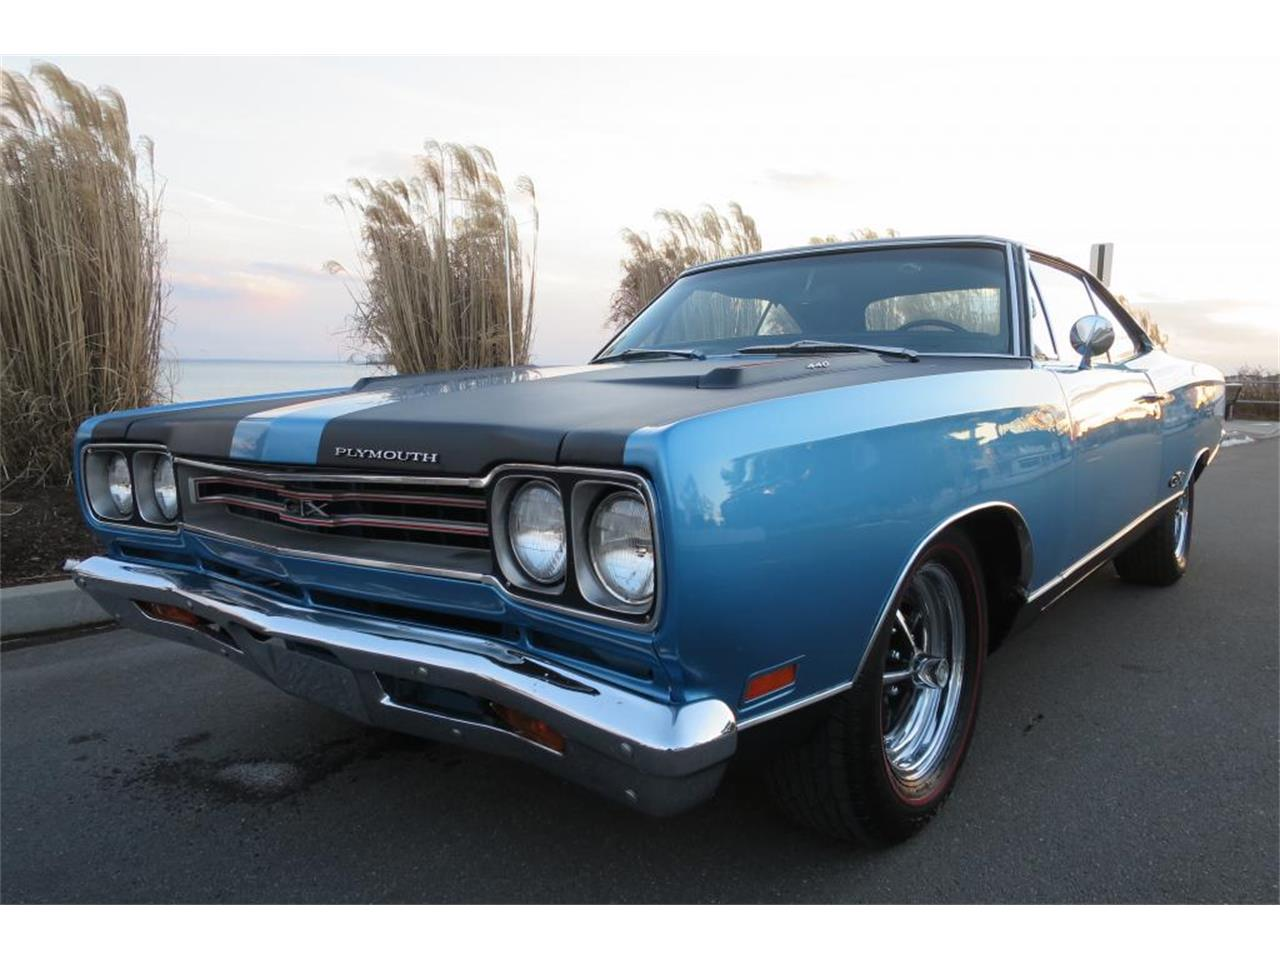 Large Picture of Classic '69 Plymouth GTX - $48,000.00 - KFR6